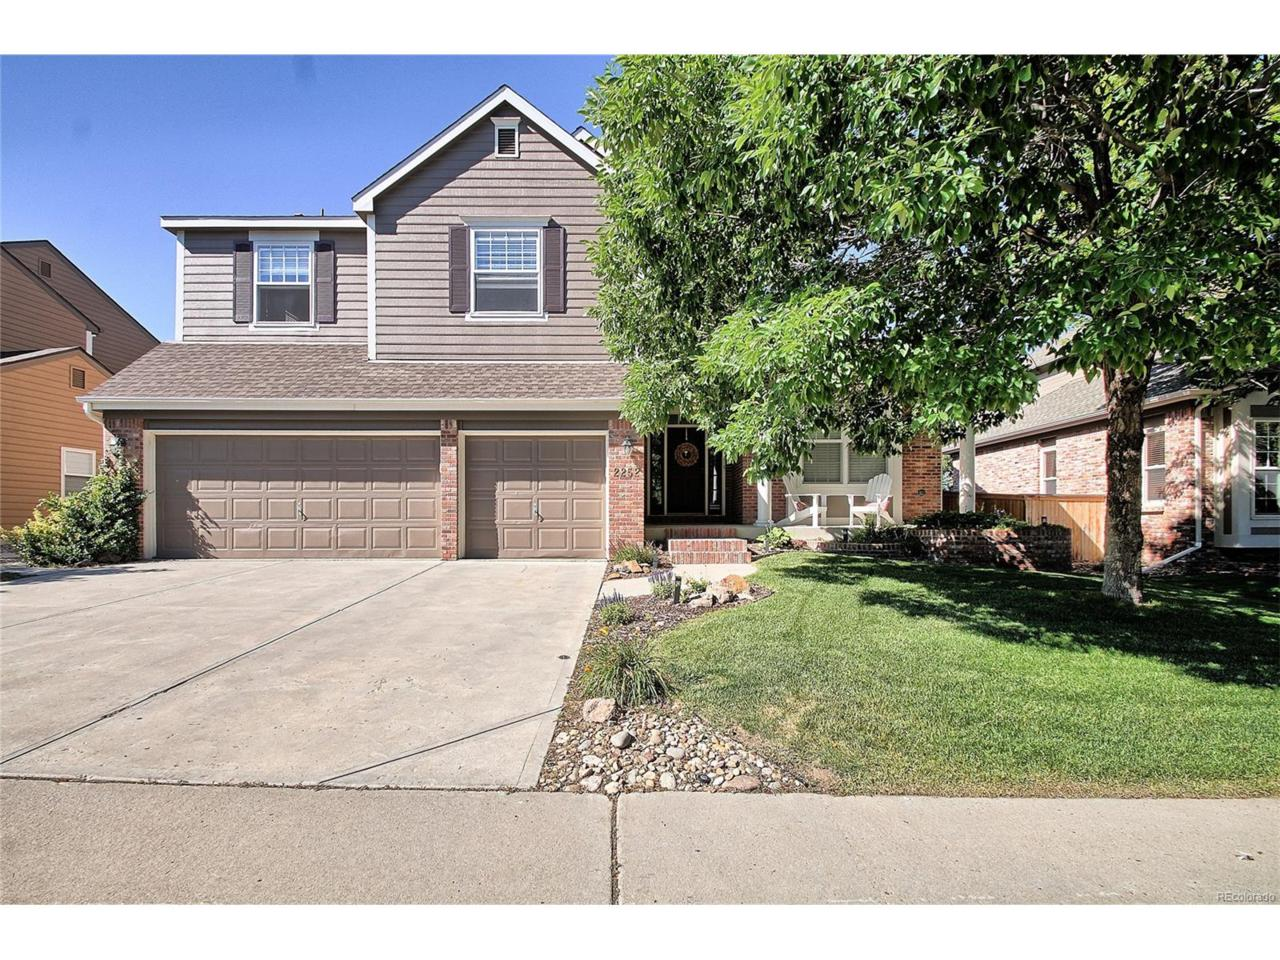 2252 Indian Paintbrush Drive, Highlands Ranch, CO 80129 (MLS #4461953) :: 8z Real Estate